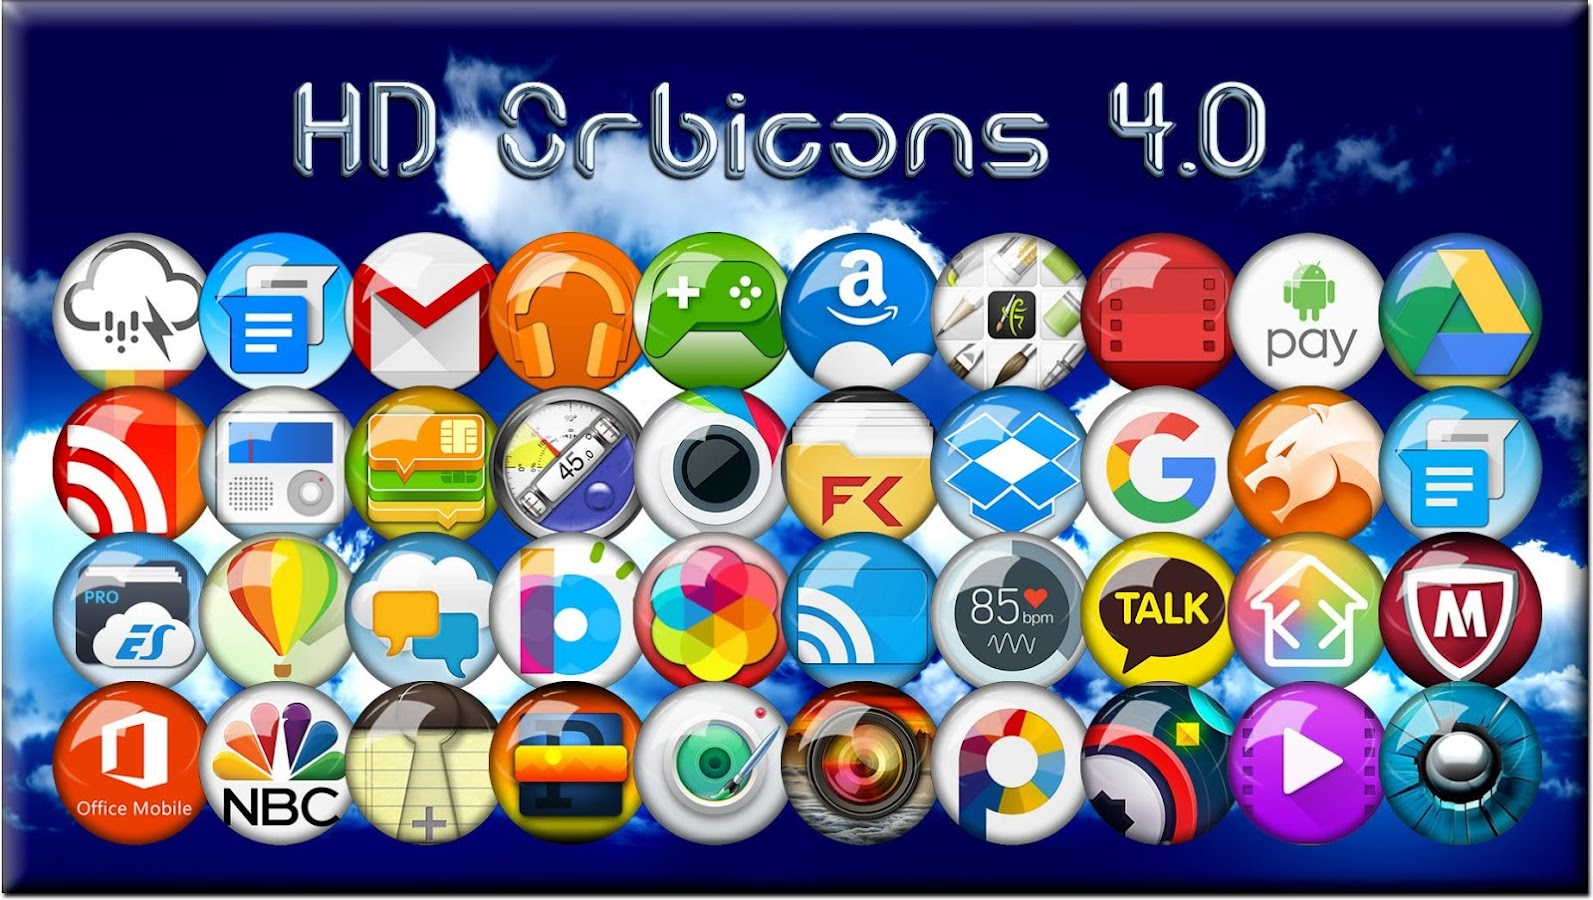 Icon Pack HD Orbicons Screenshot 1